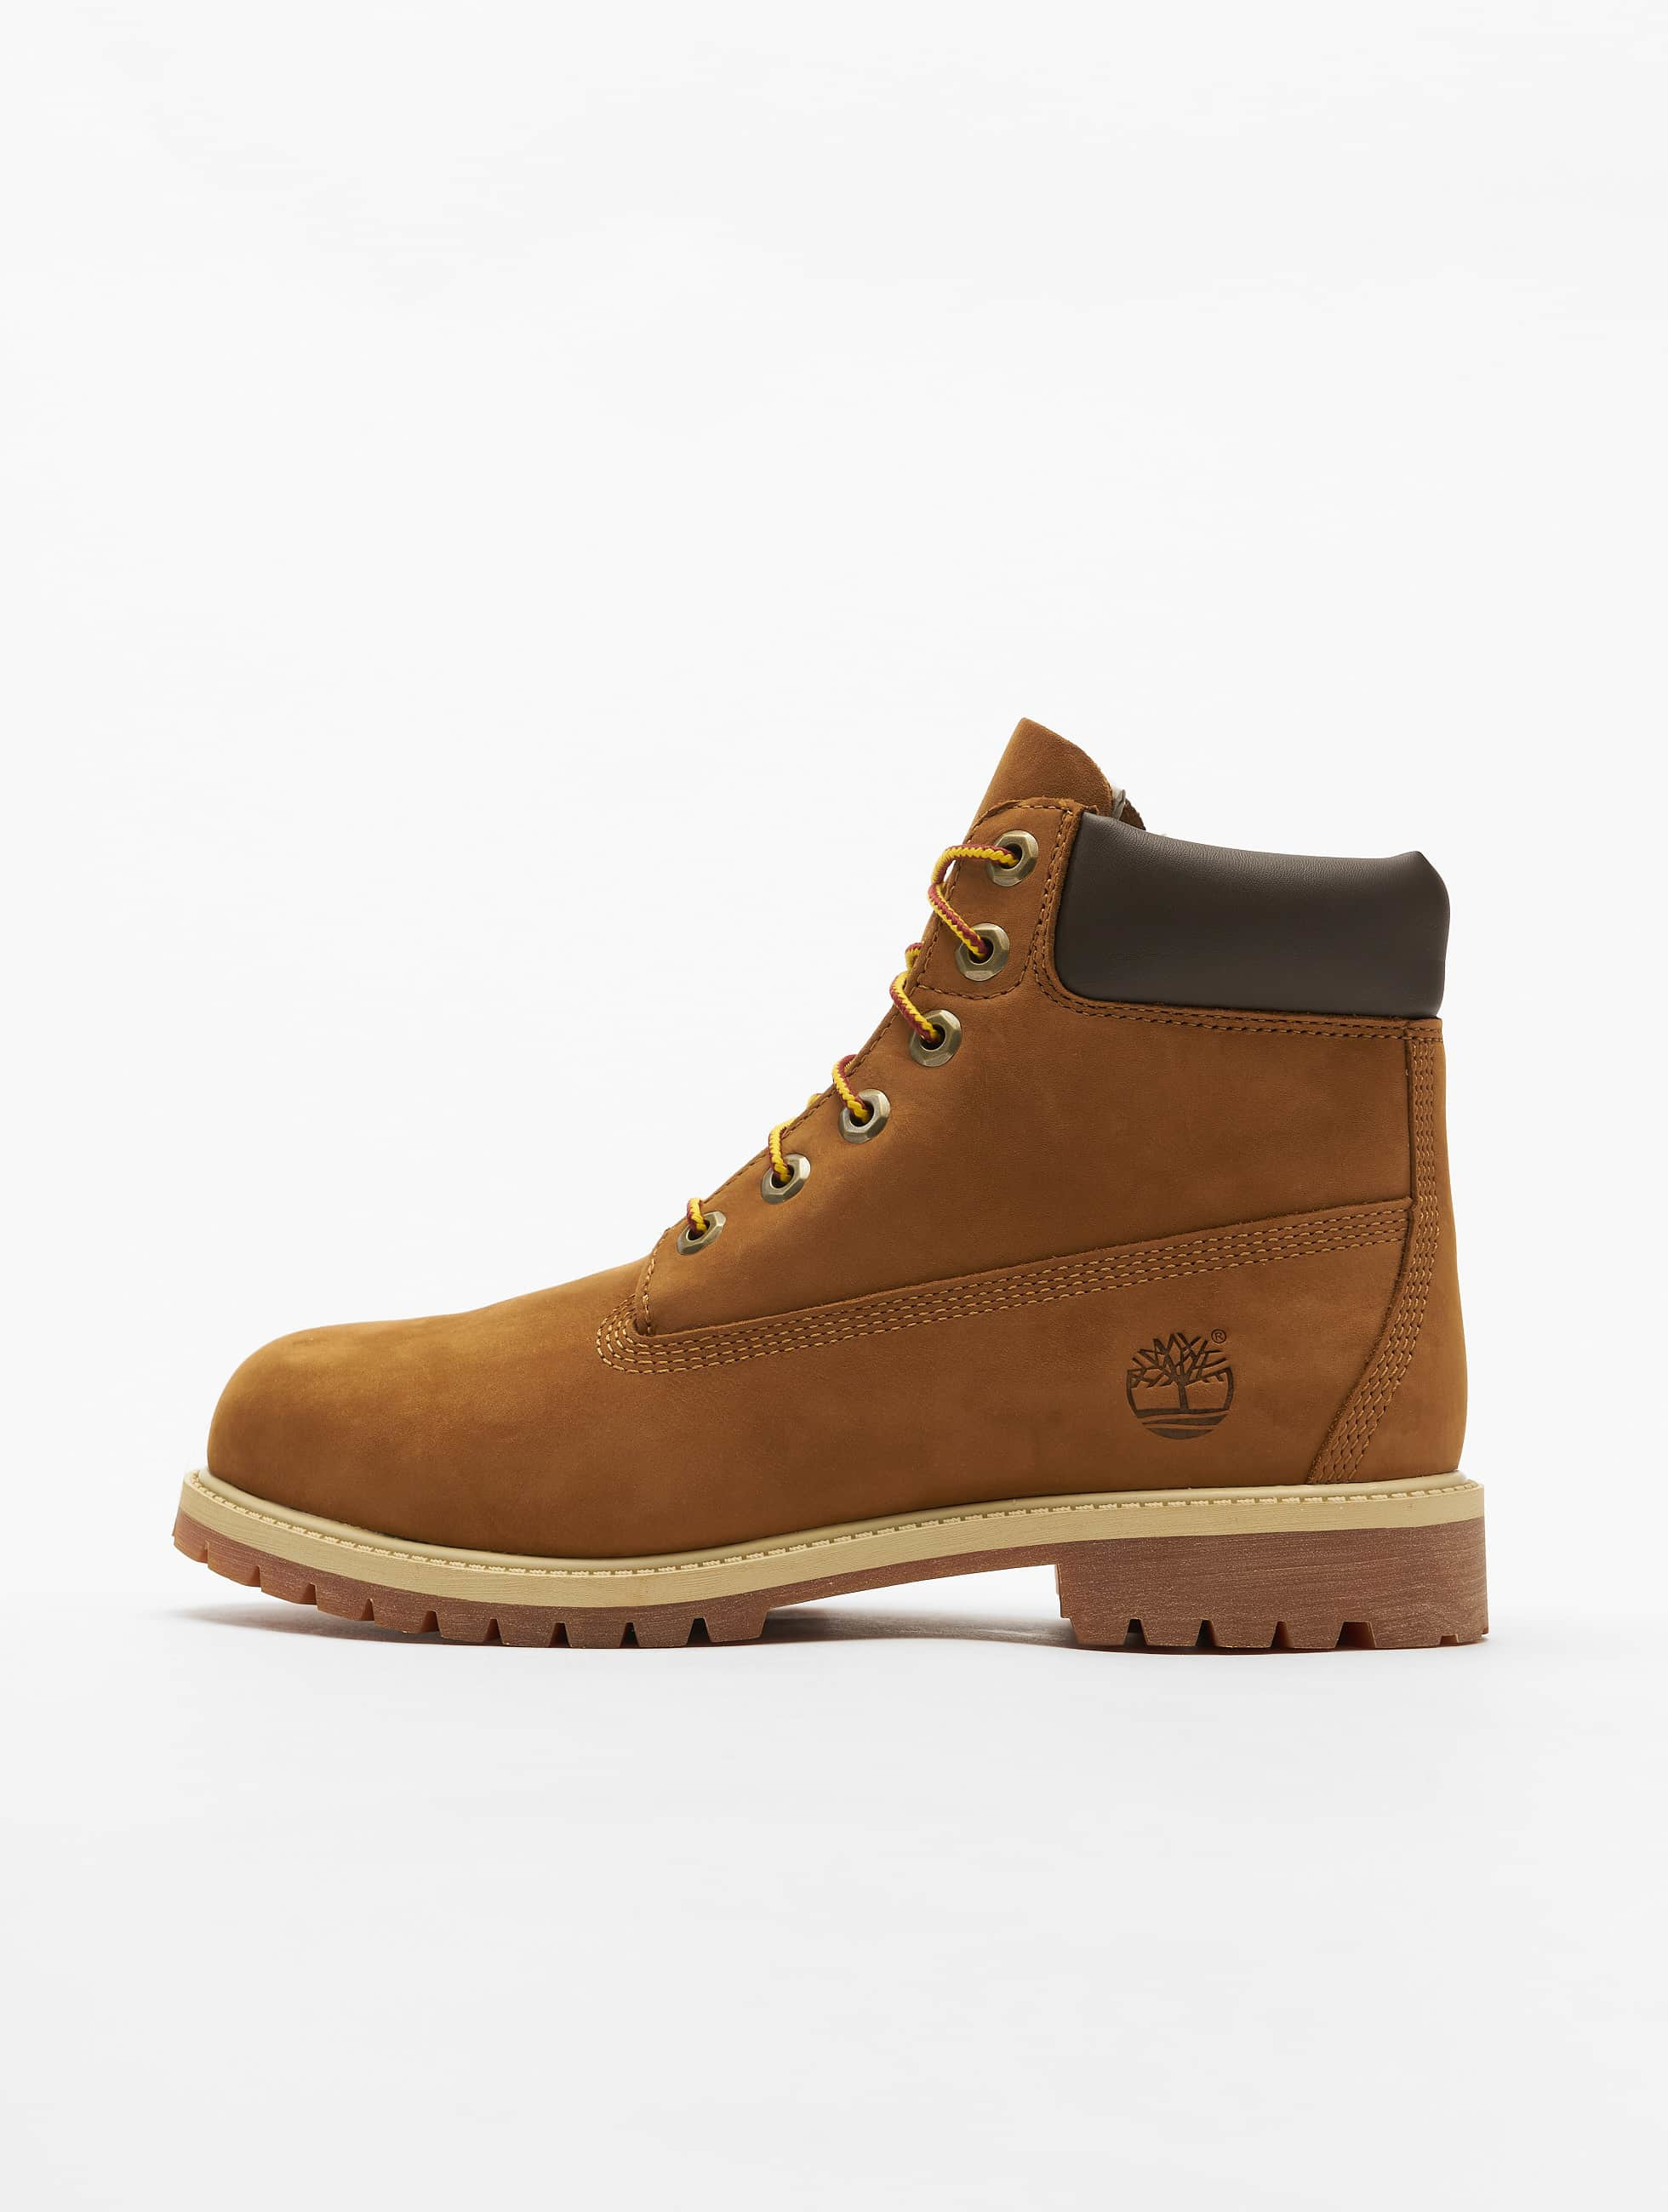 Timberland 6 In Premium Waterproof Boots Brown